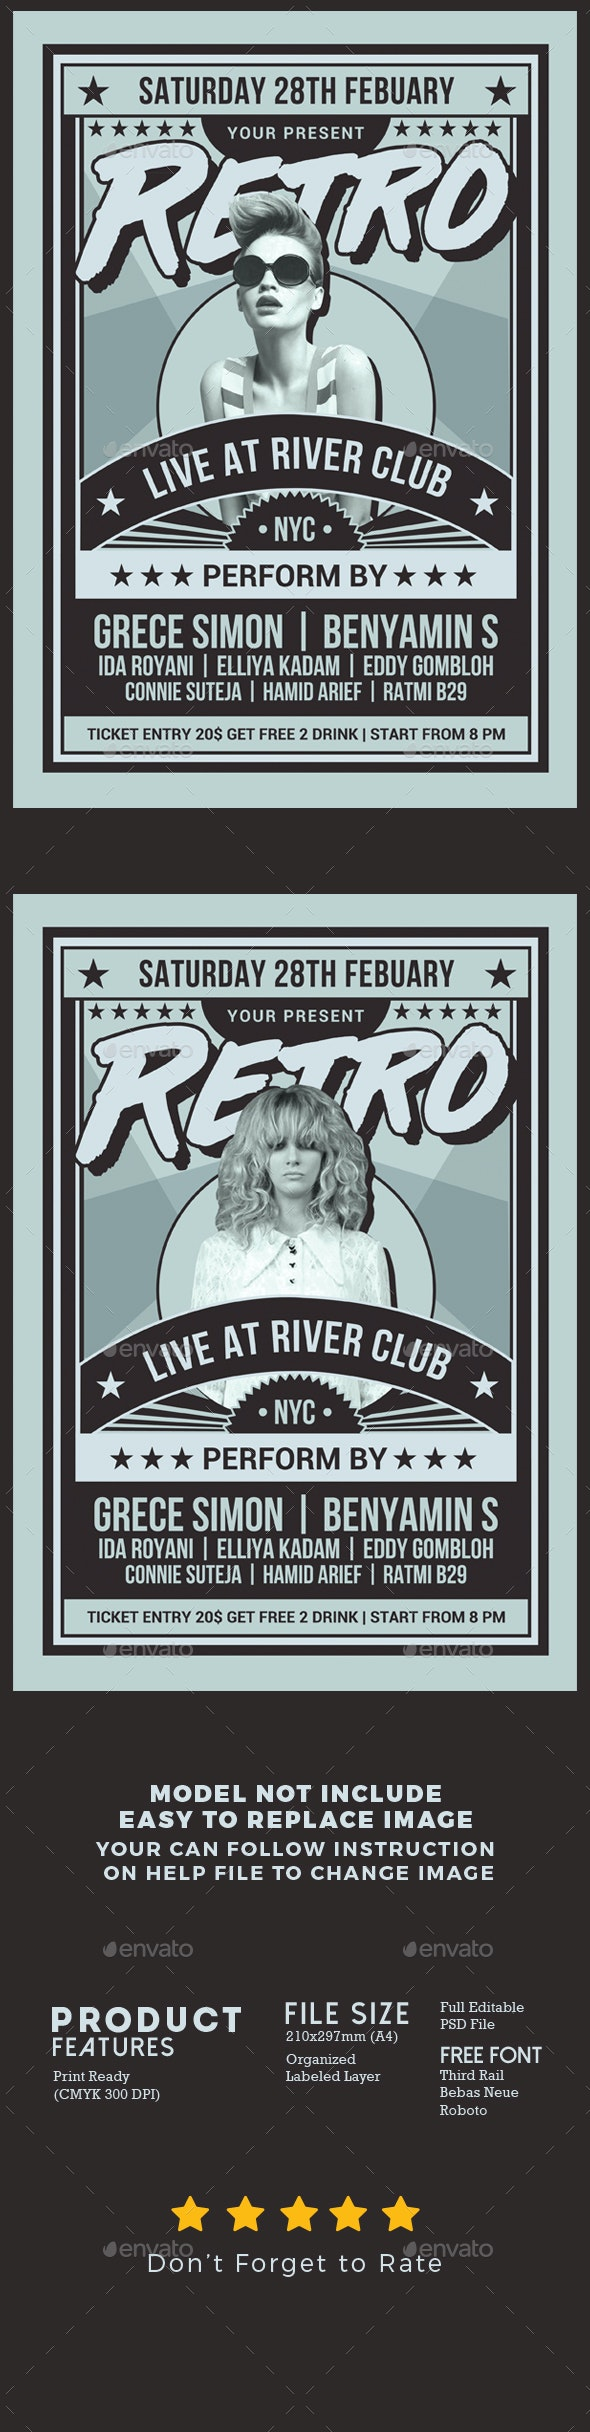 Retro Music Show Flyer - Events Flyers